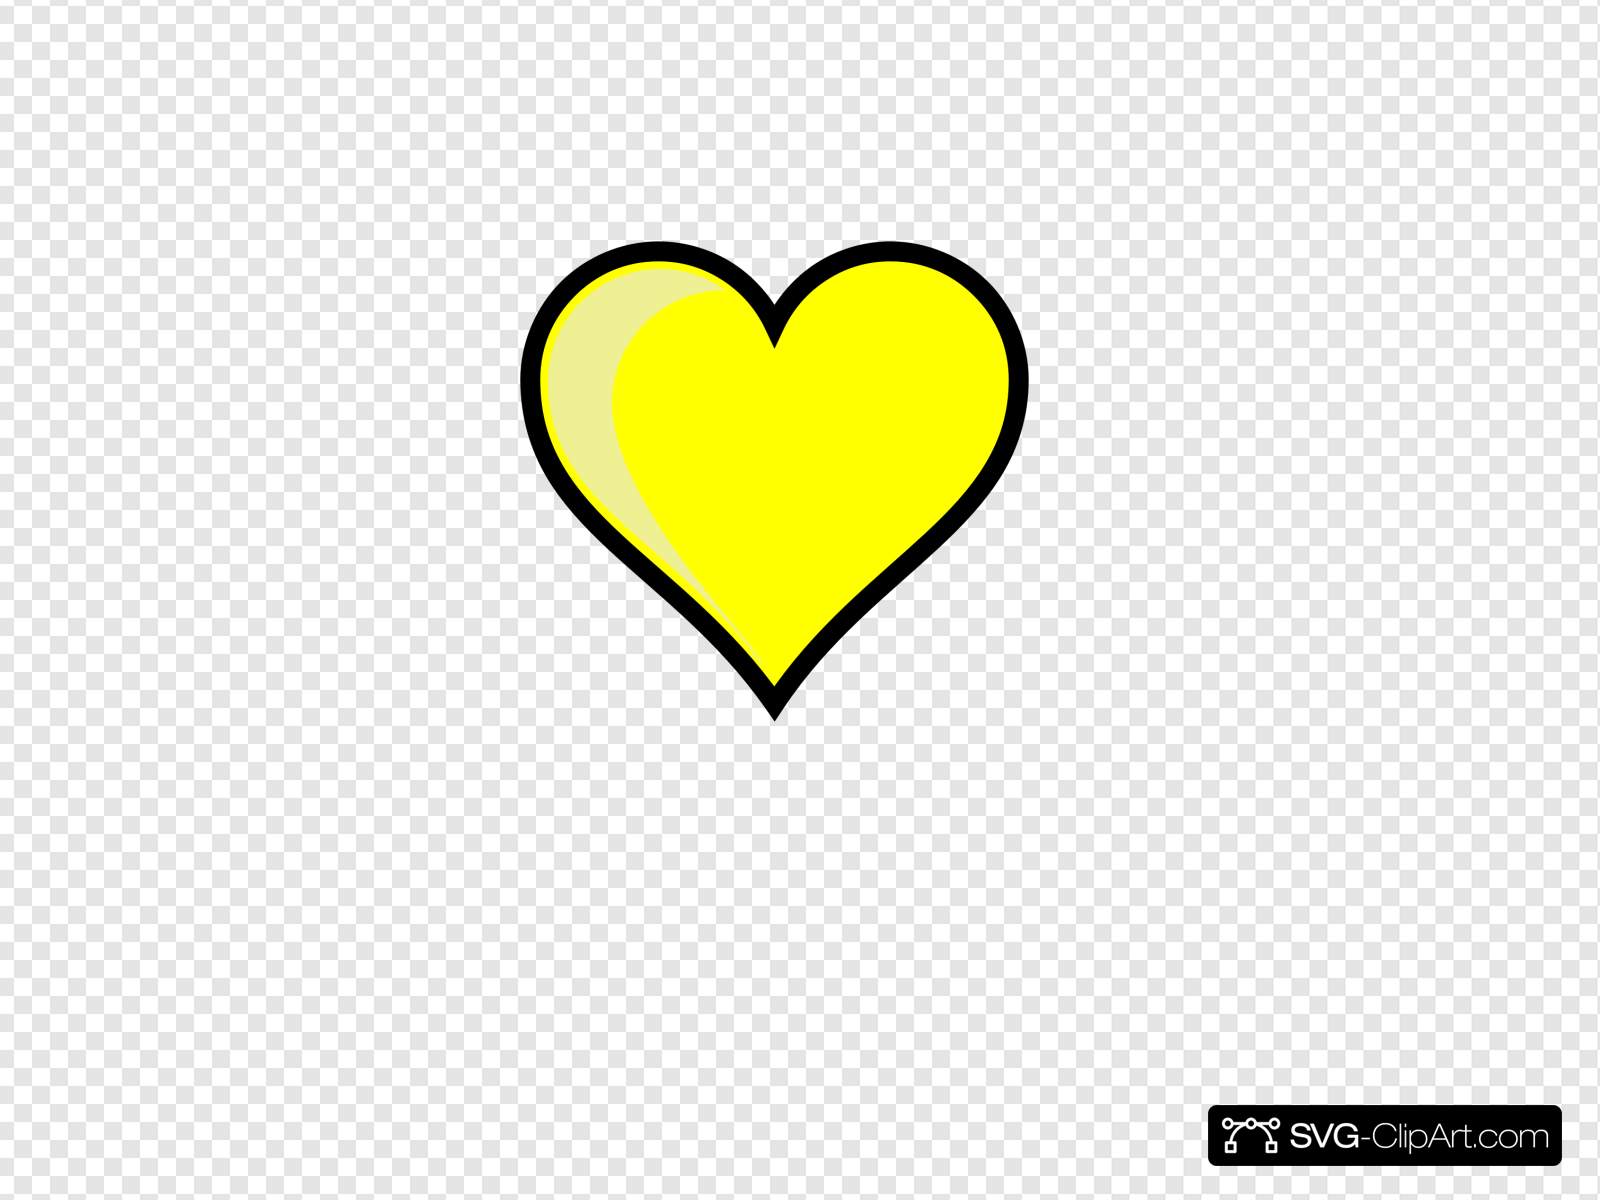 Yellow Heart Clip art, Icon and SVG.